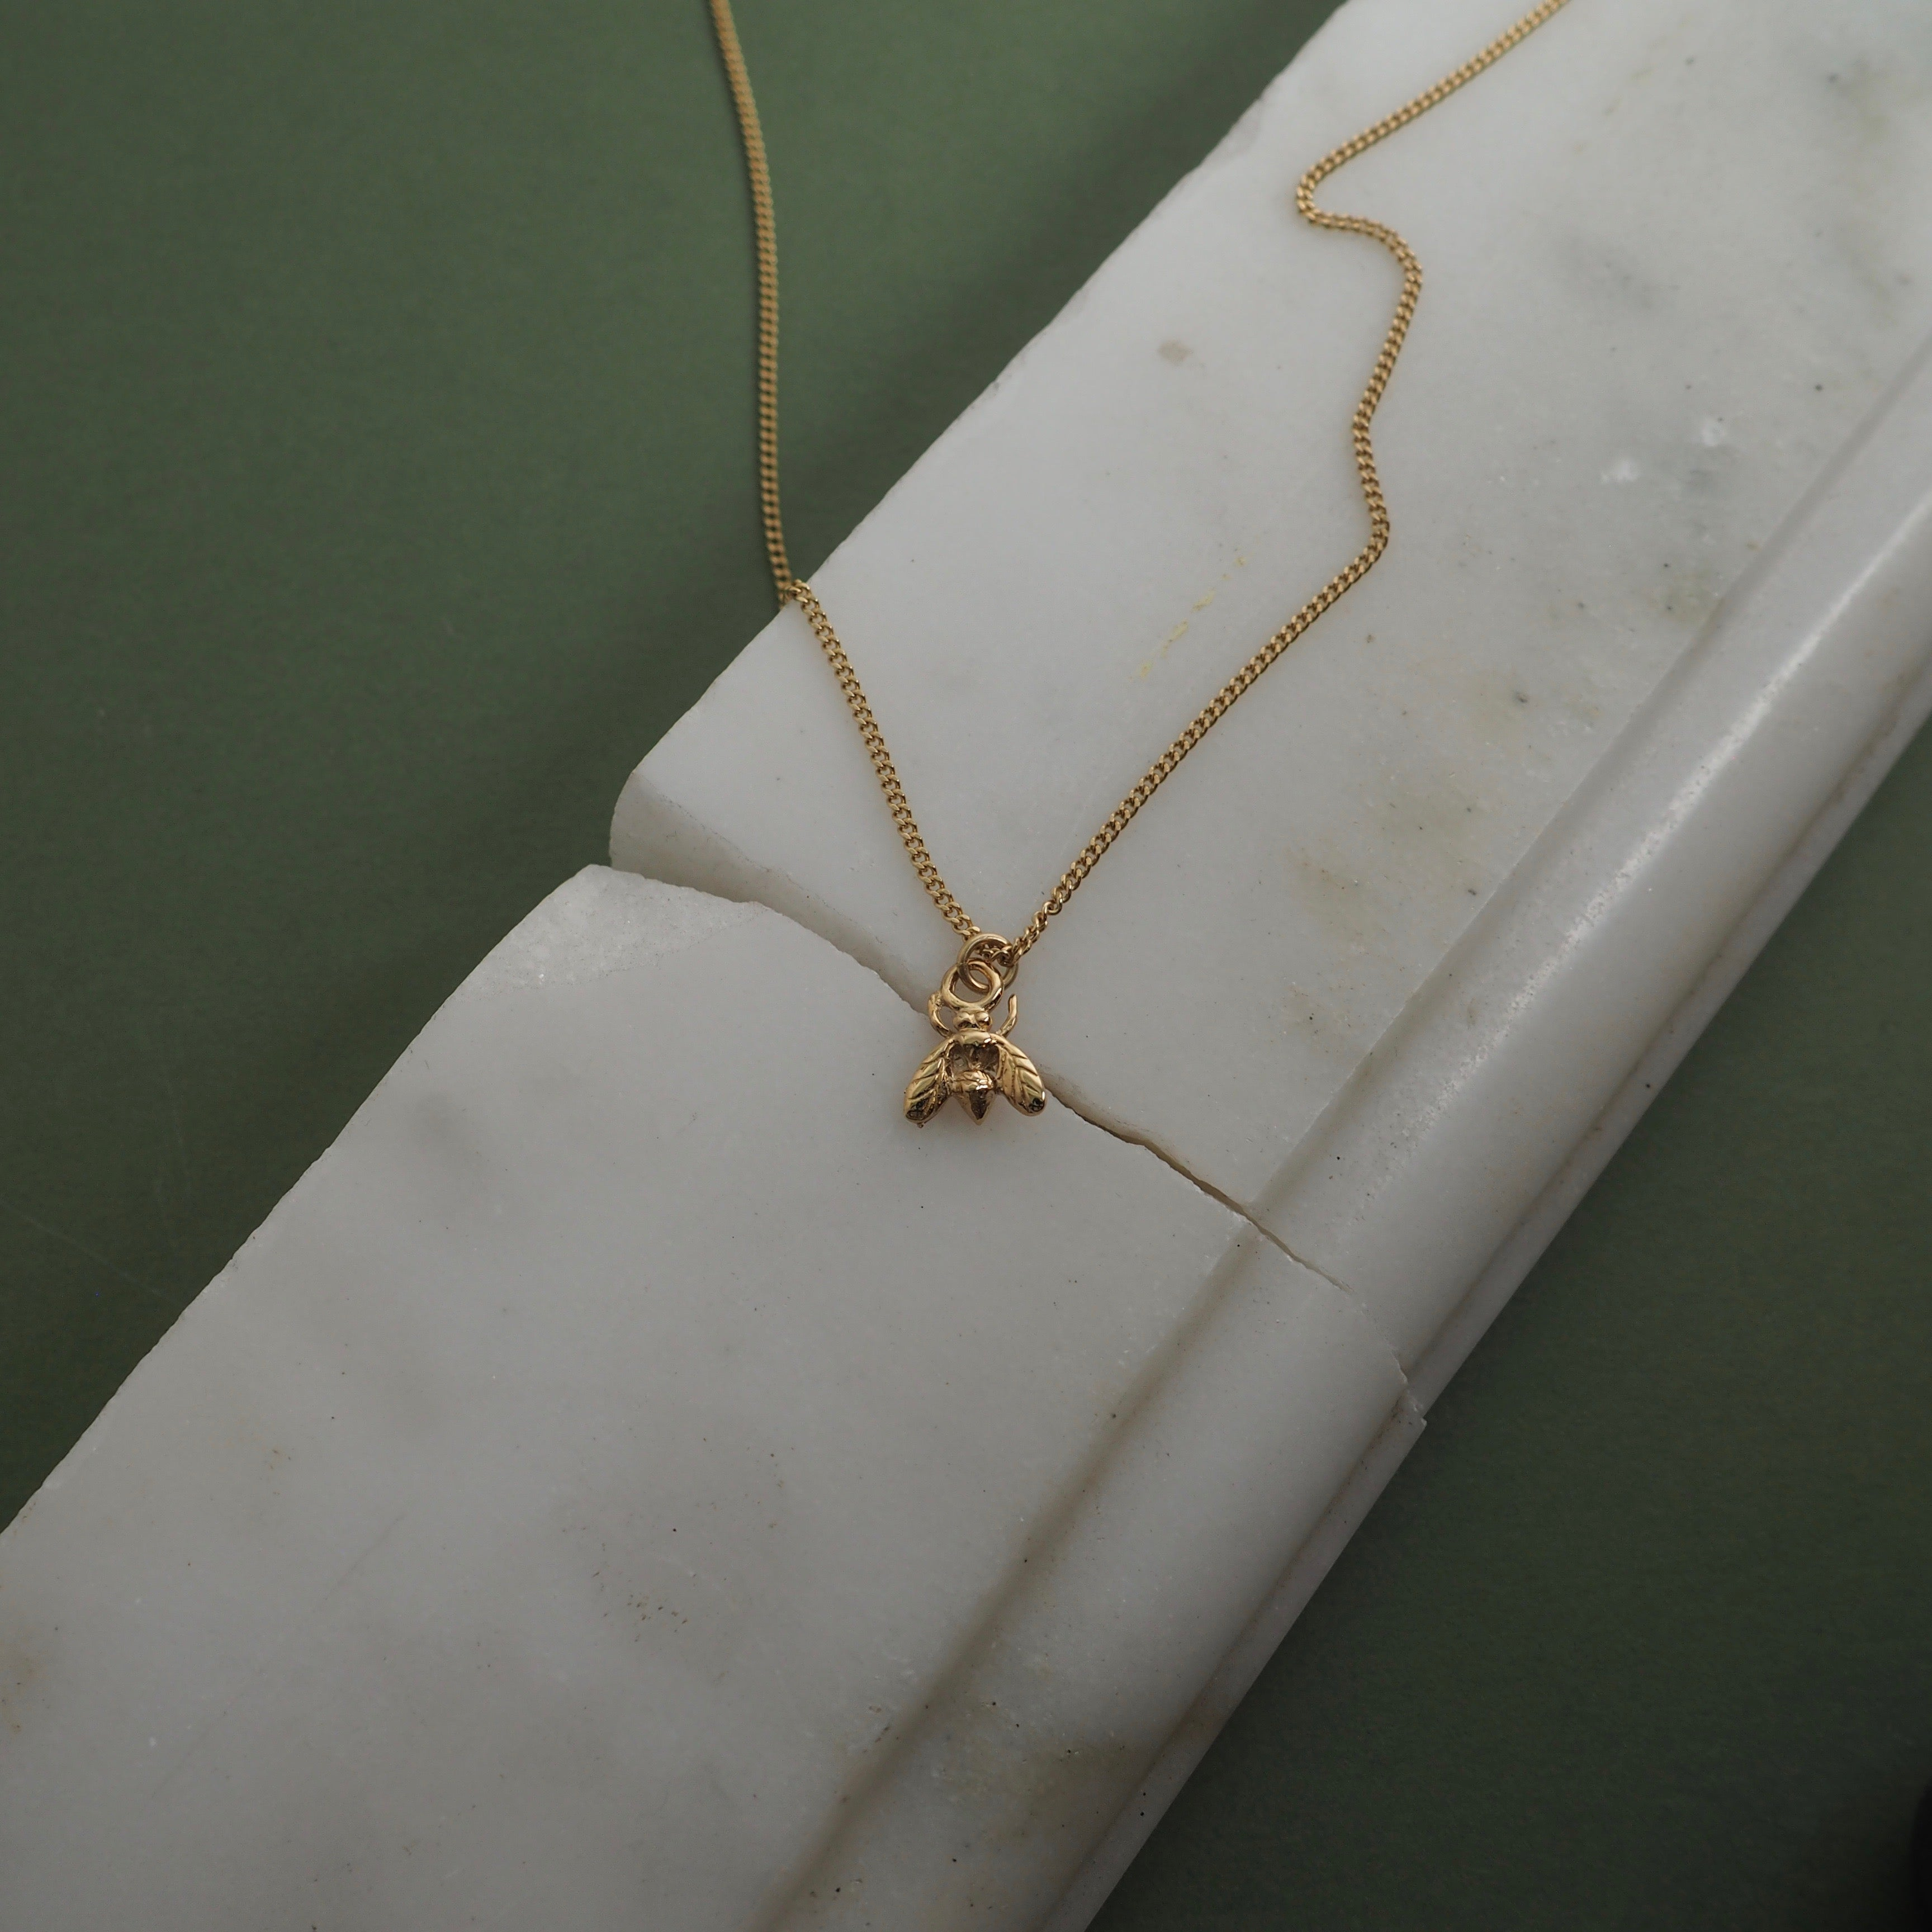 9ct Gold Little Fly Necklace by Yasmin Everley